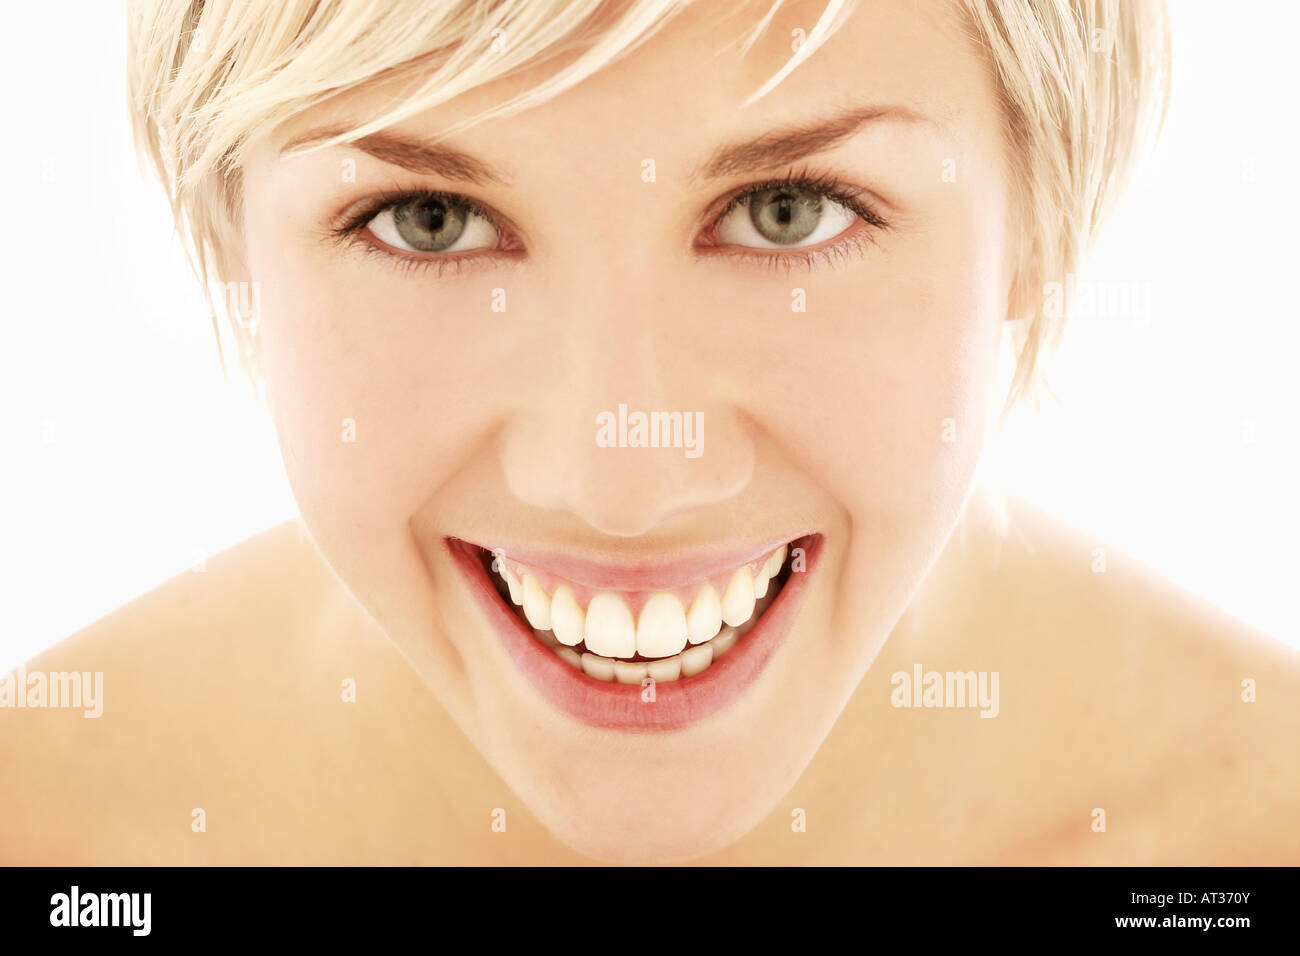 A portrait of young woman, smiling - Stock Image